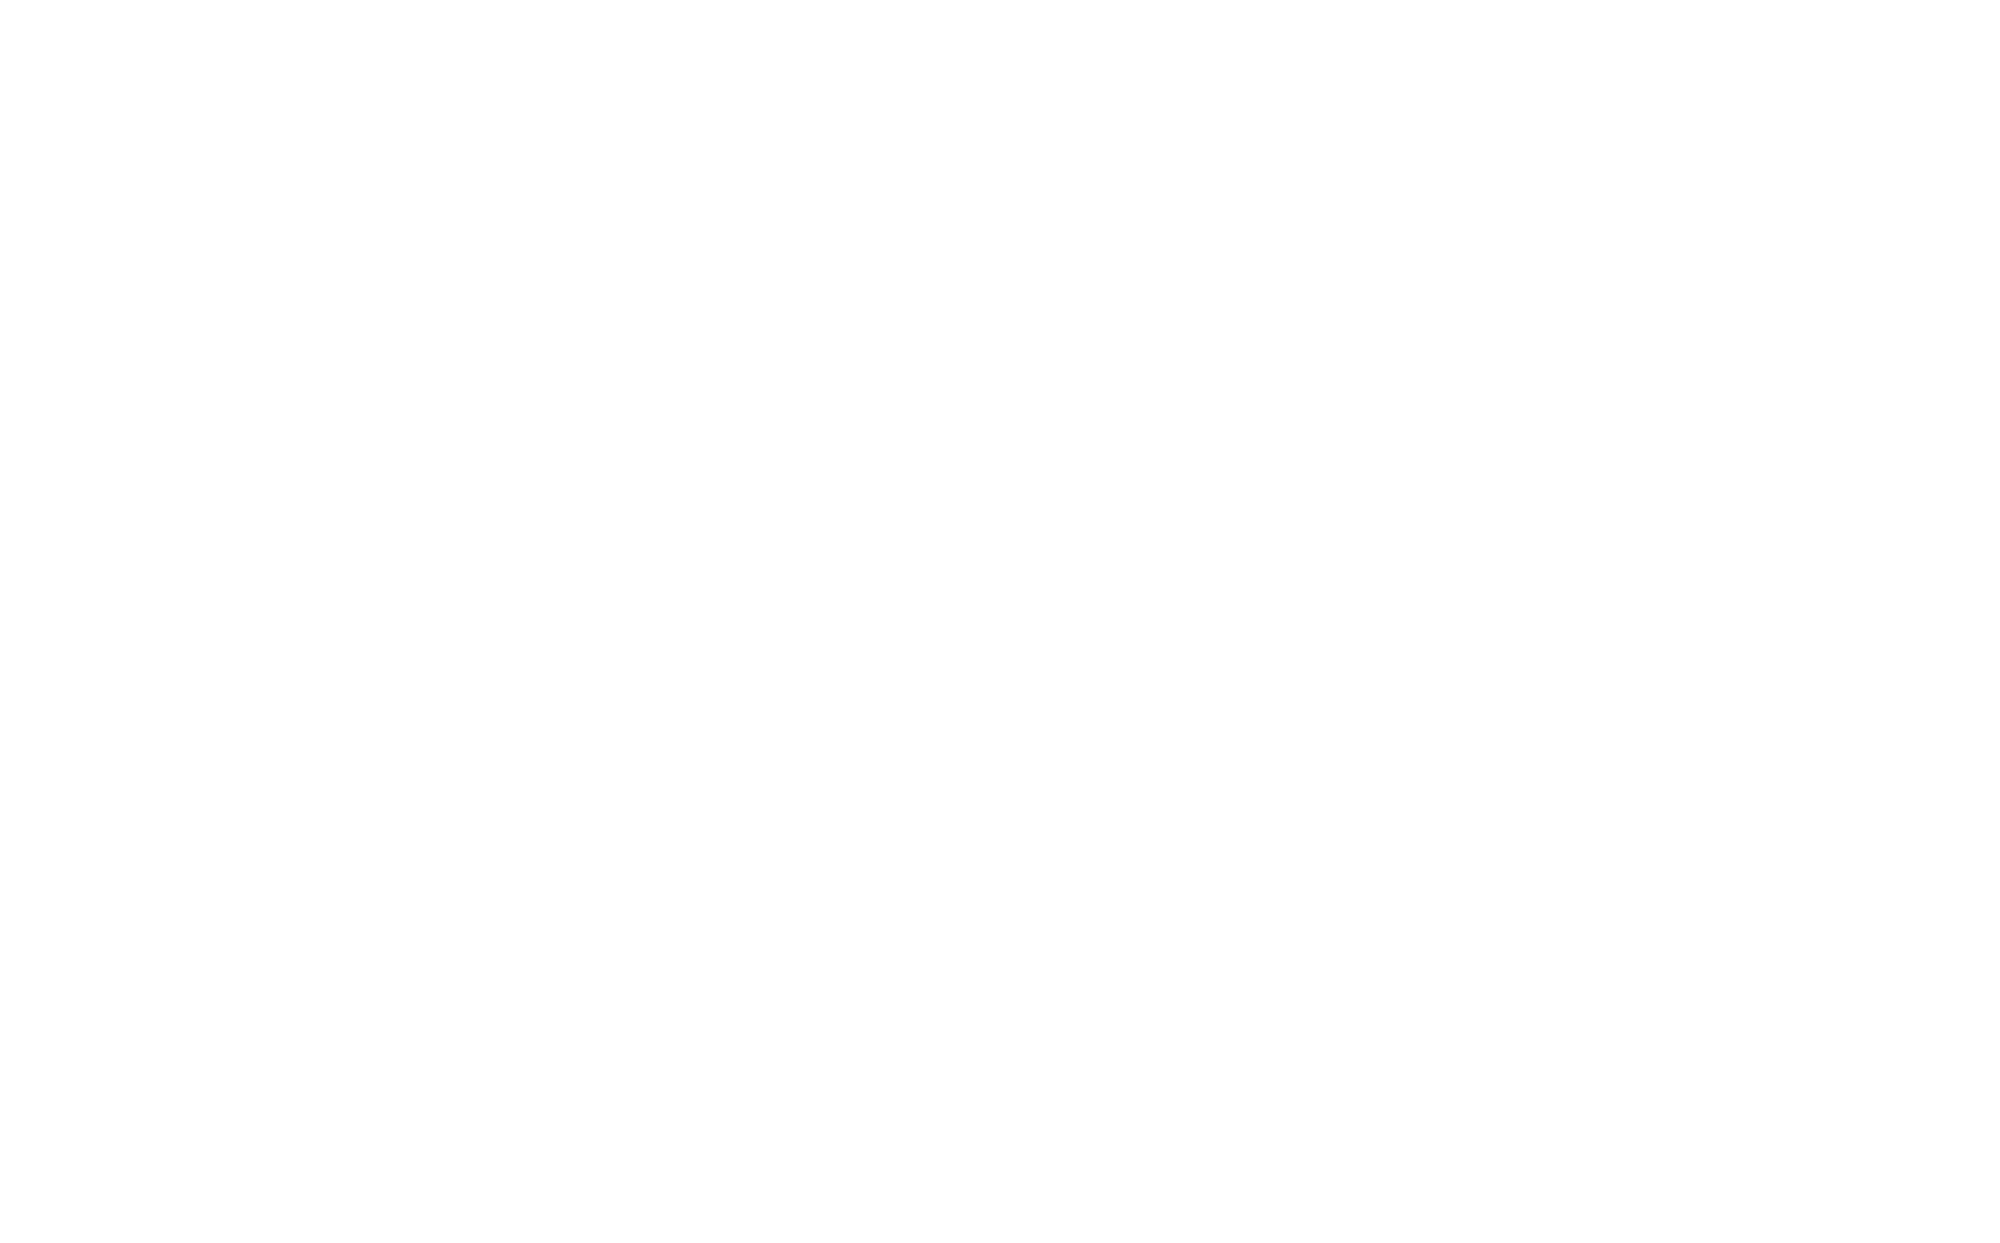 Excellentia International Institute